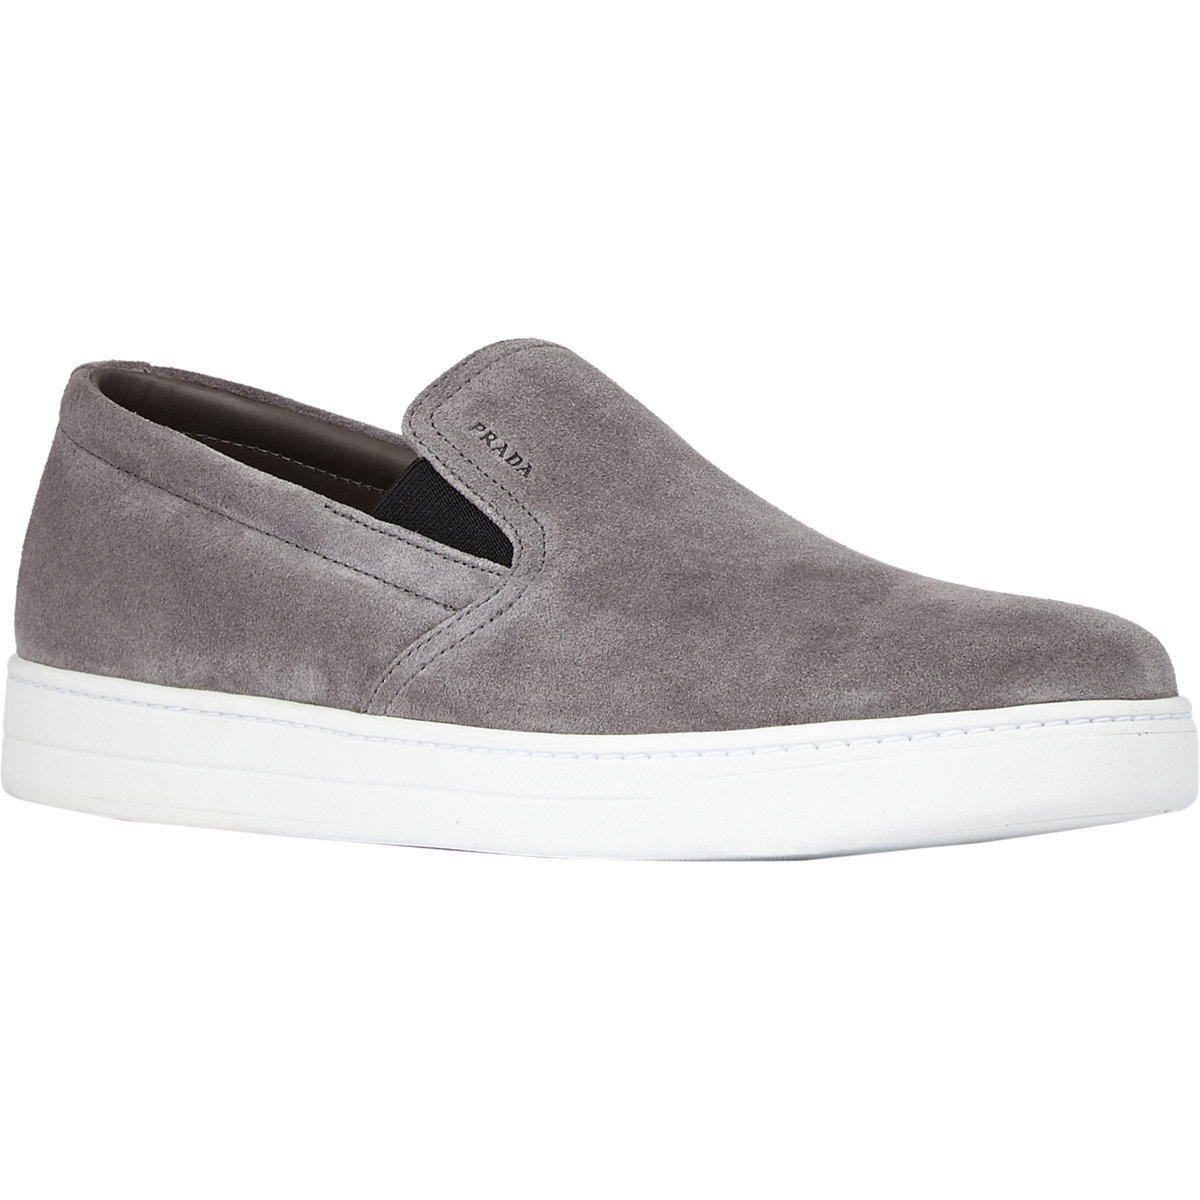 eeaec0e2a124 Prada Suede Slip-On Sneakers in Gray for Men - Lyst